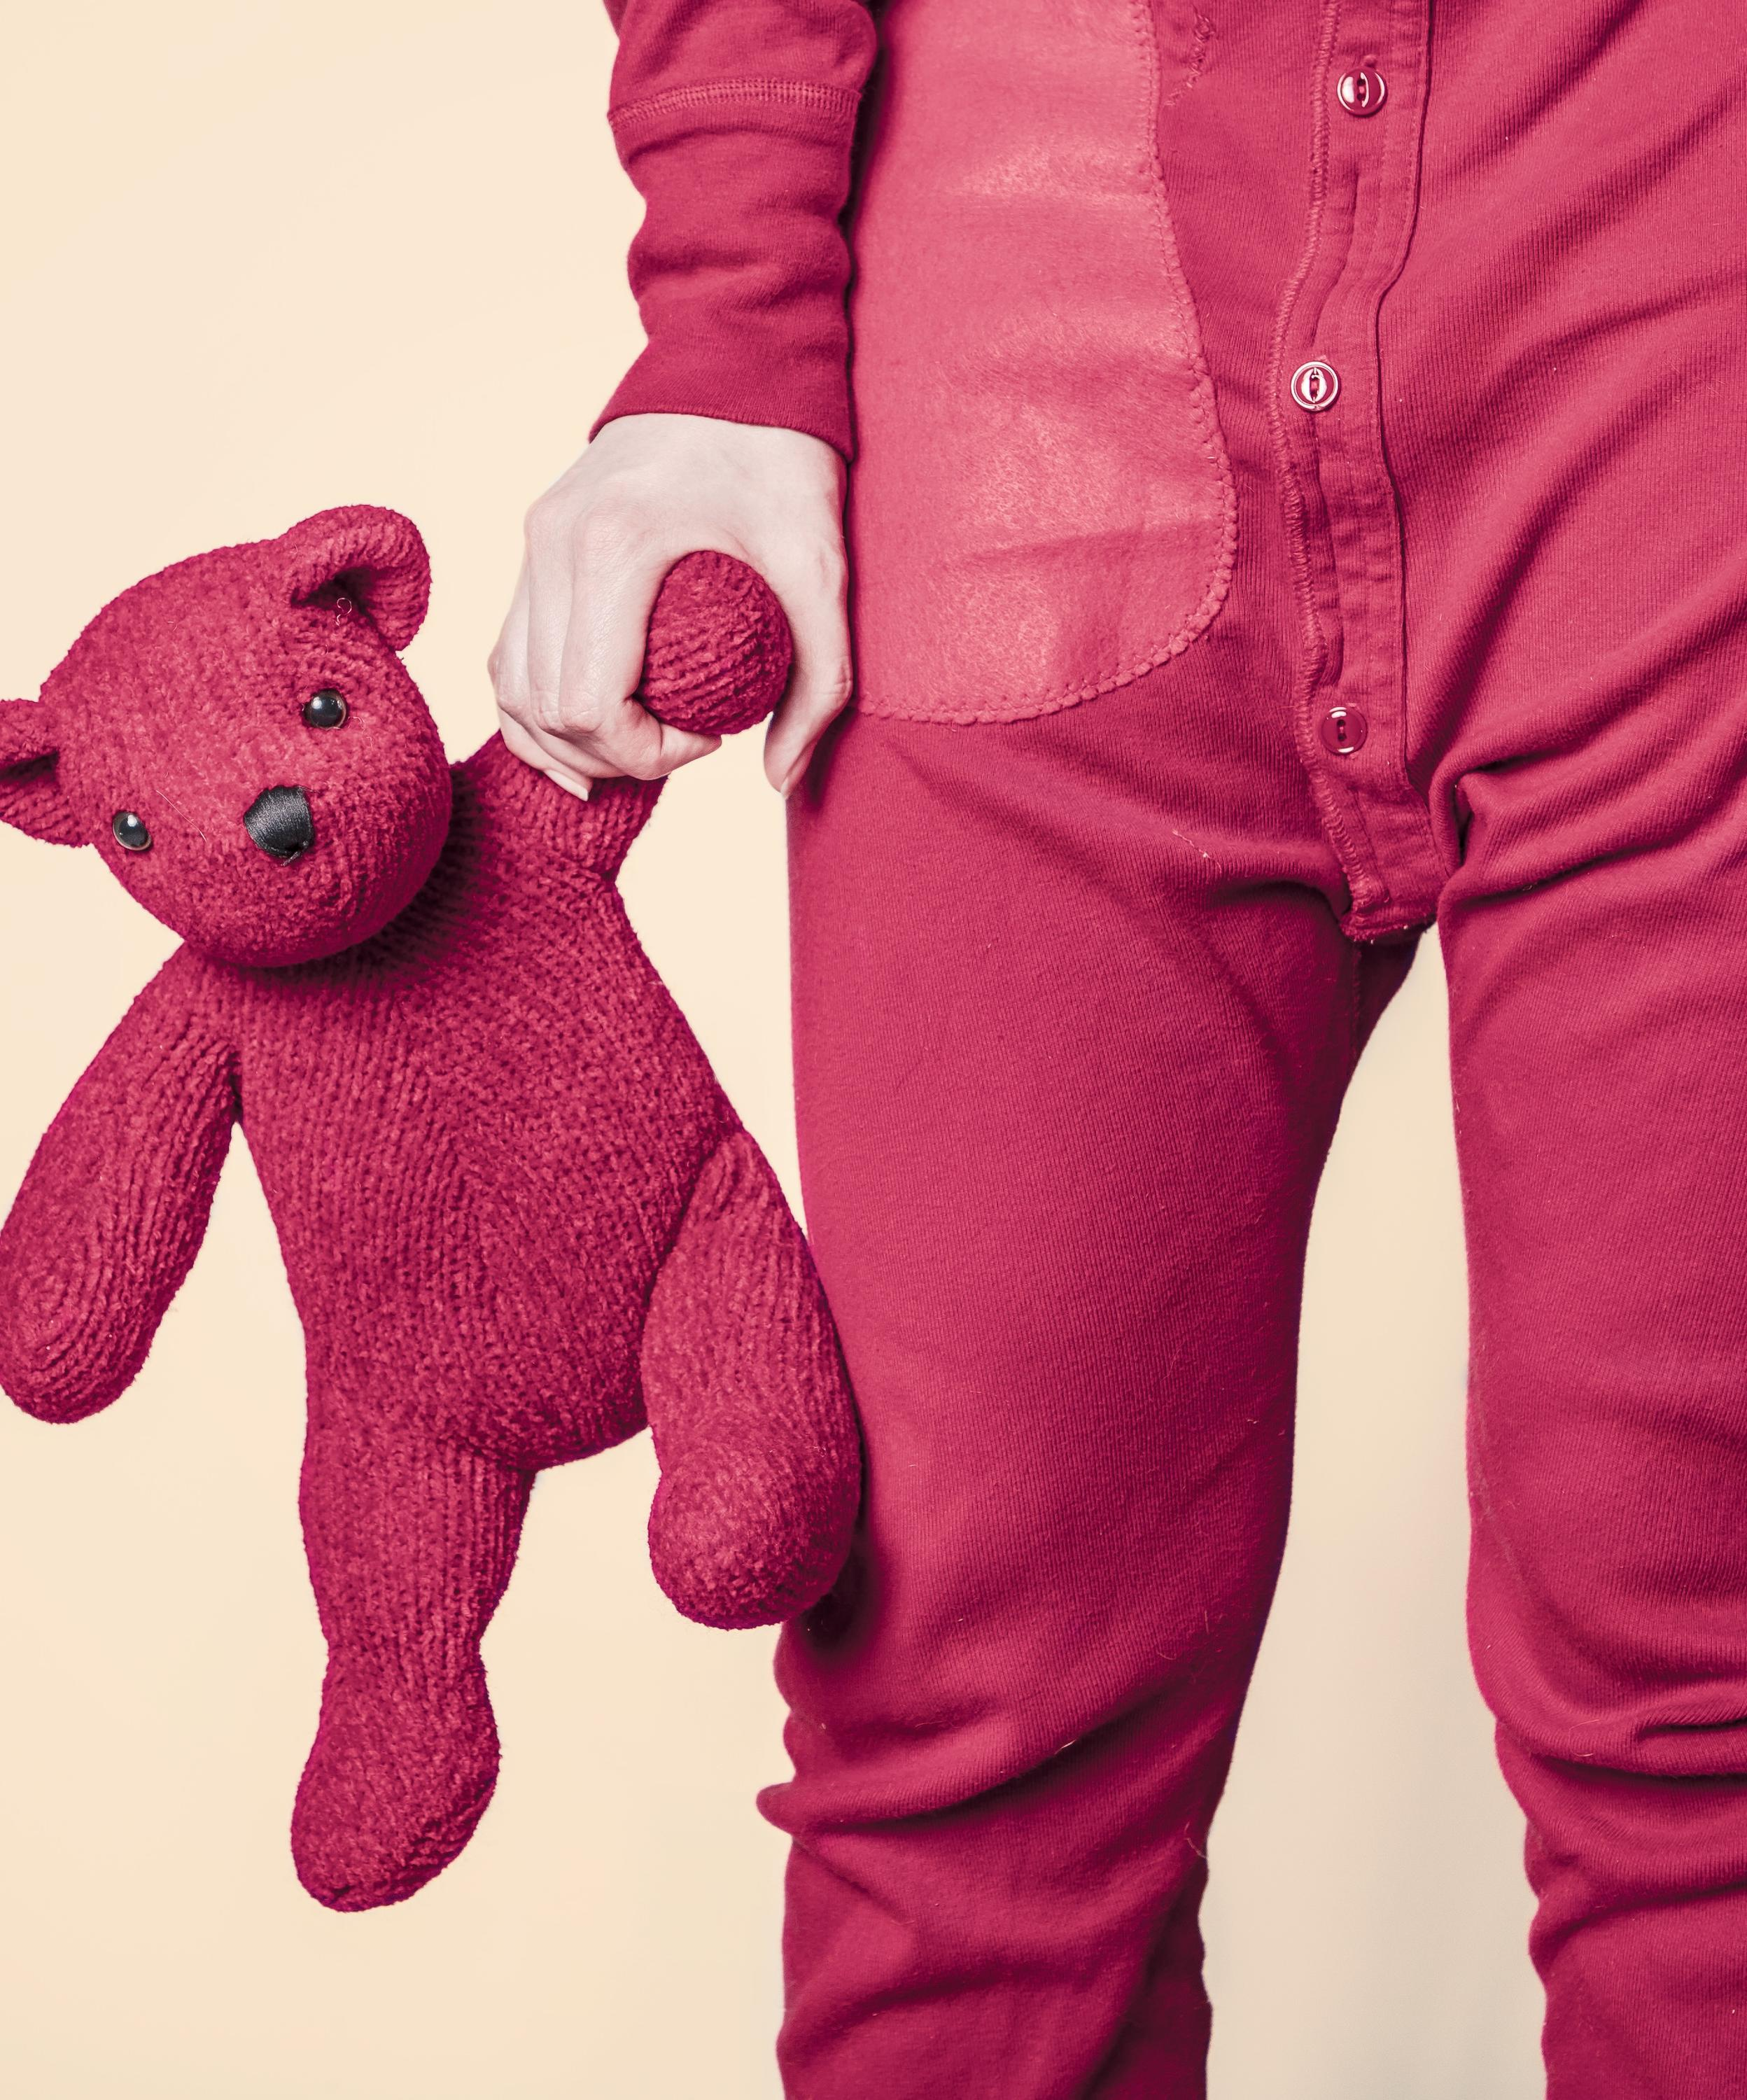 Person in red pajamas holding a teddy bear